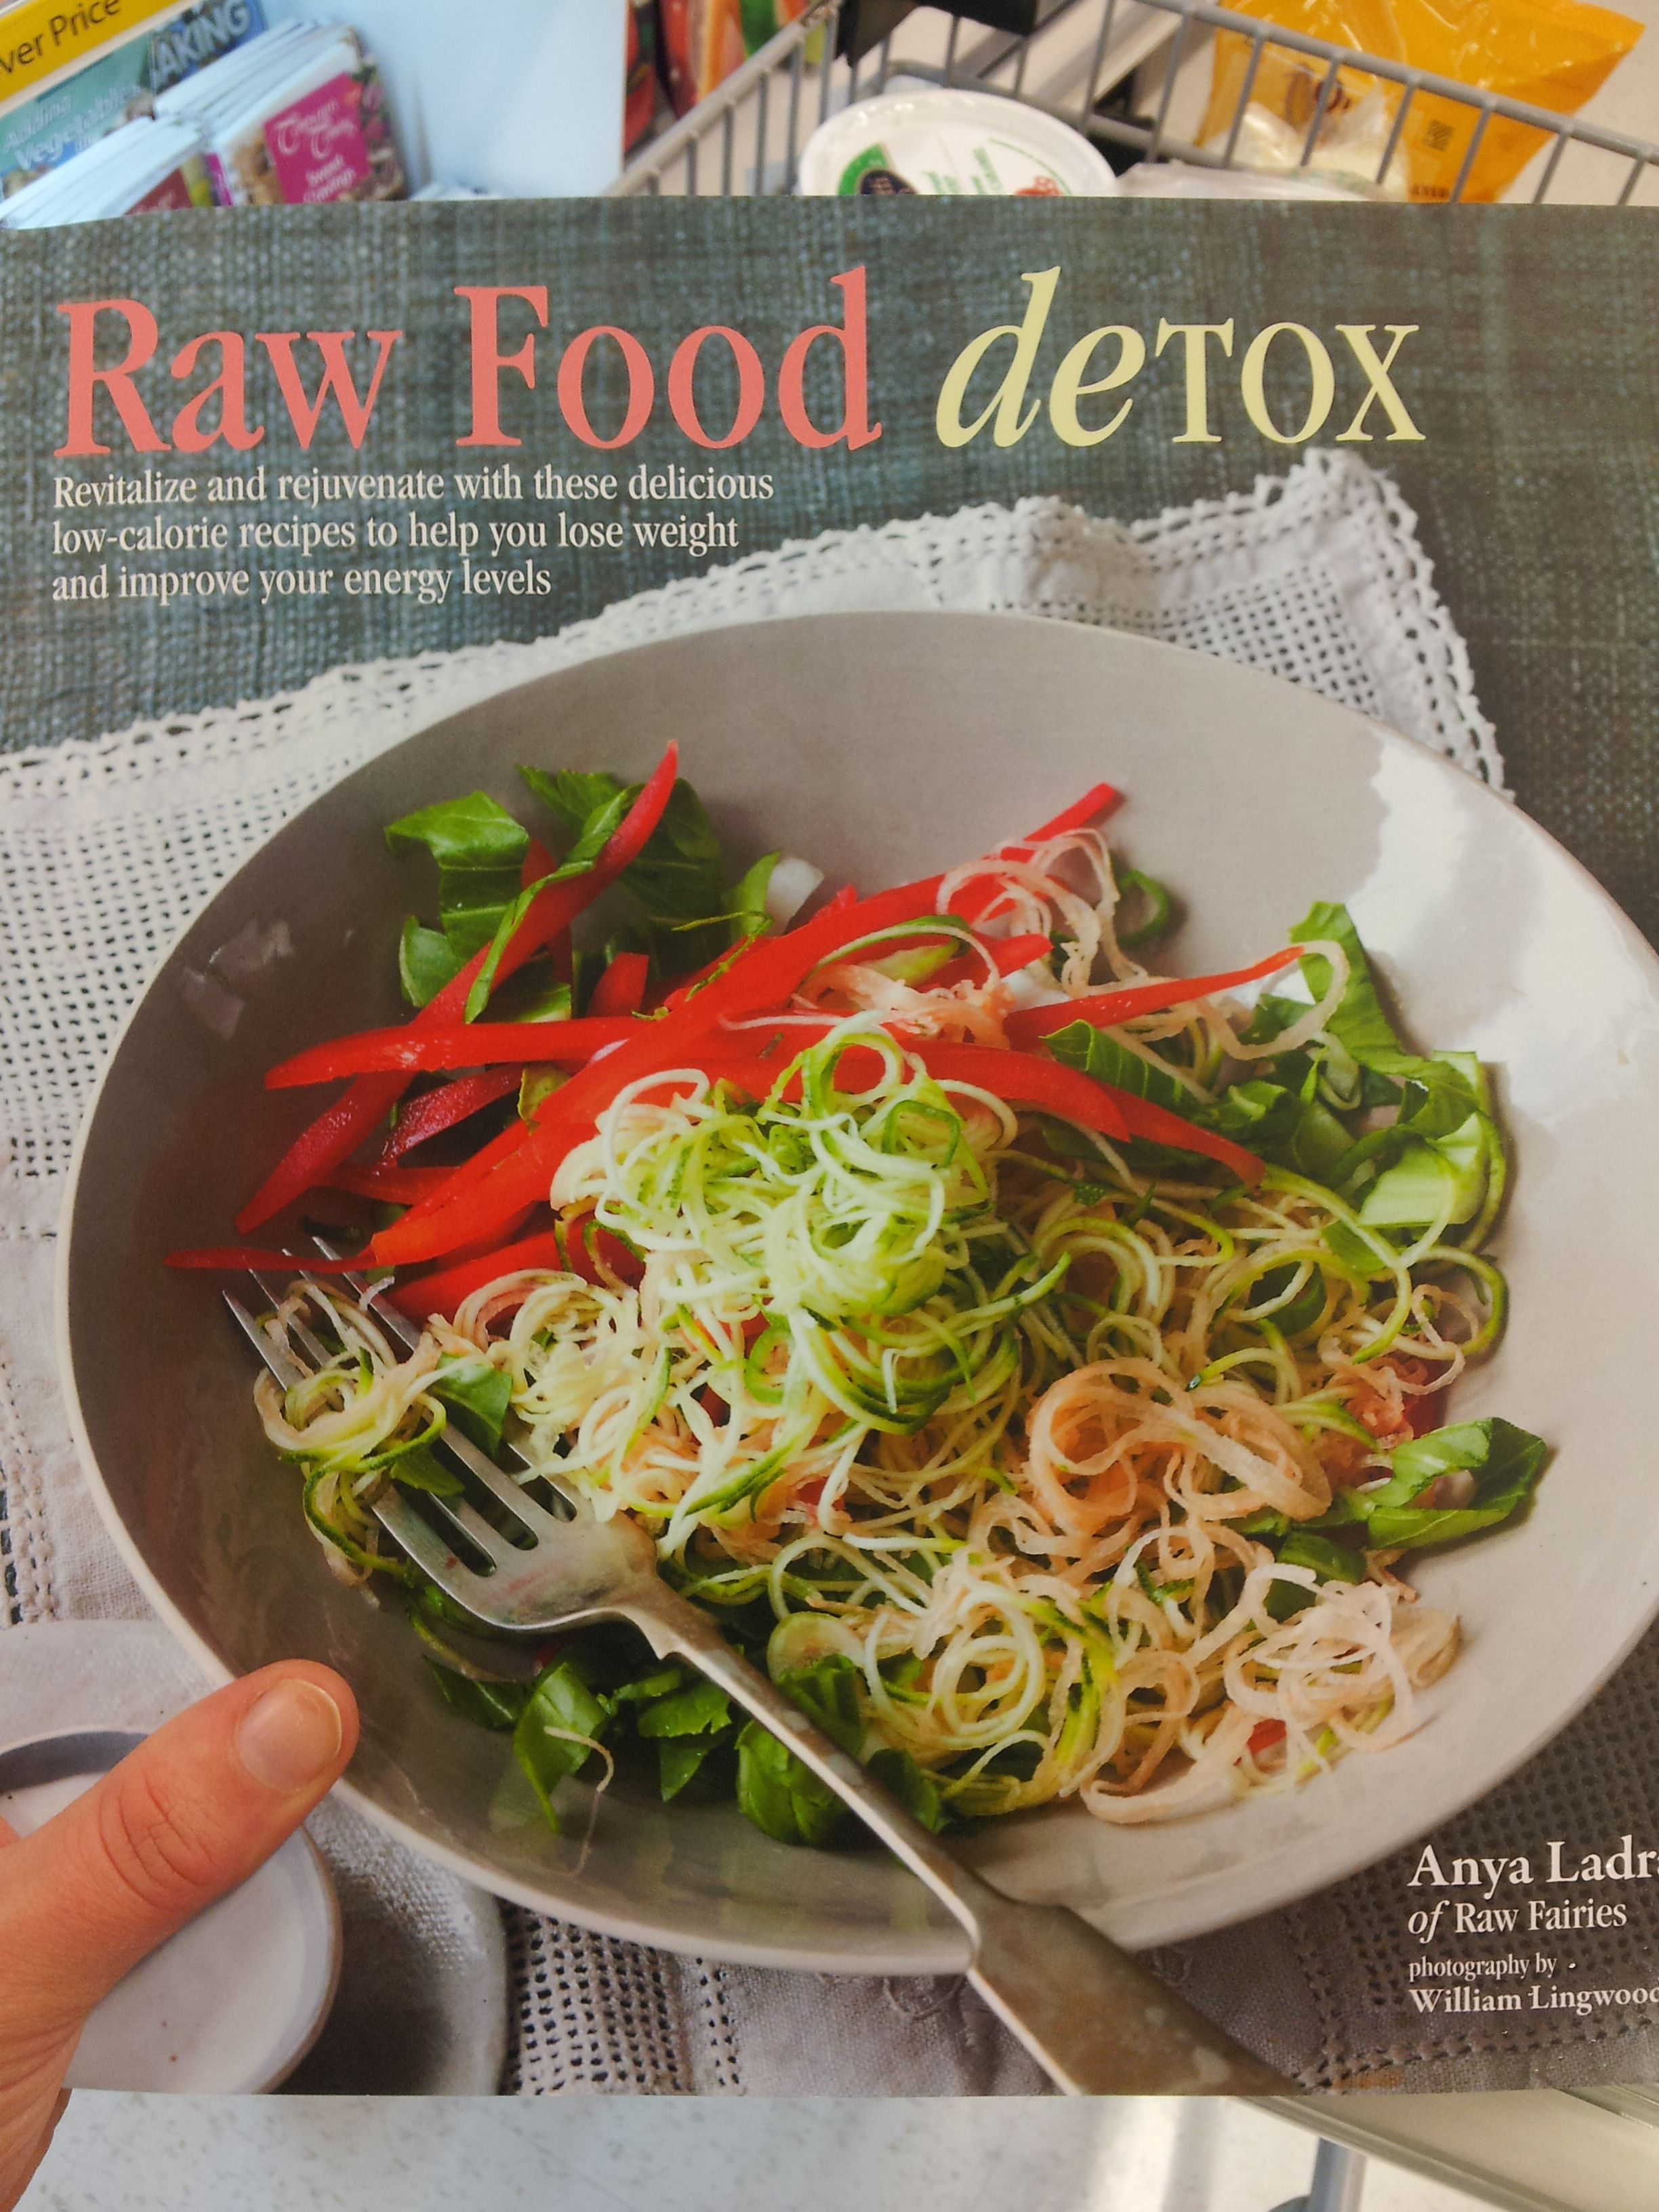 Raw love 3 books pinterest books booktopia has raw food detox by anya ladra buy a discounted hardcover of raw food detox online from australias leading online bookstore forumfinder Choice Image